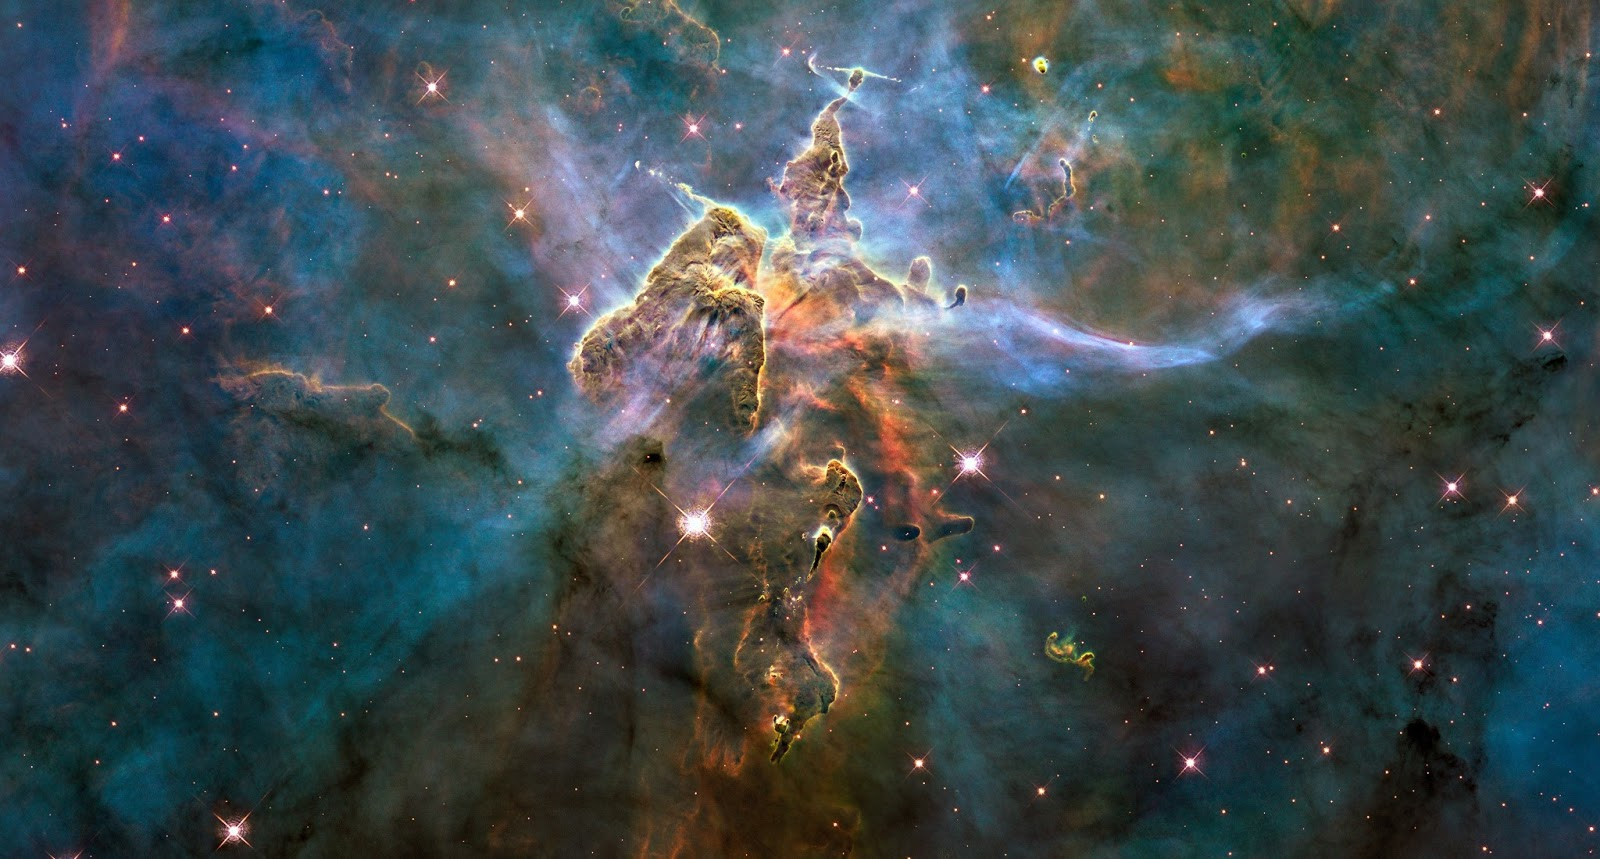 hubble telescope images of space - photo #16